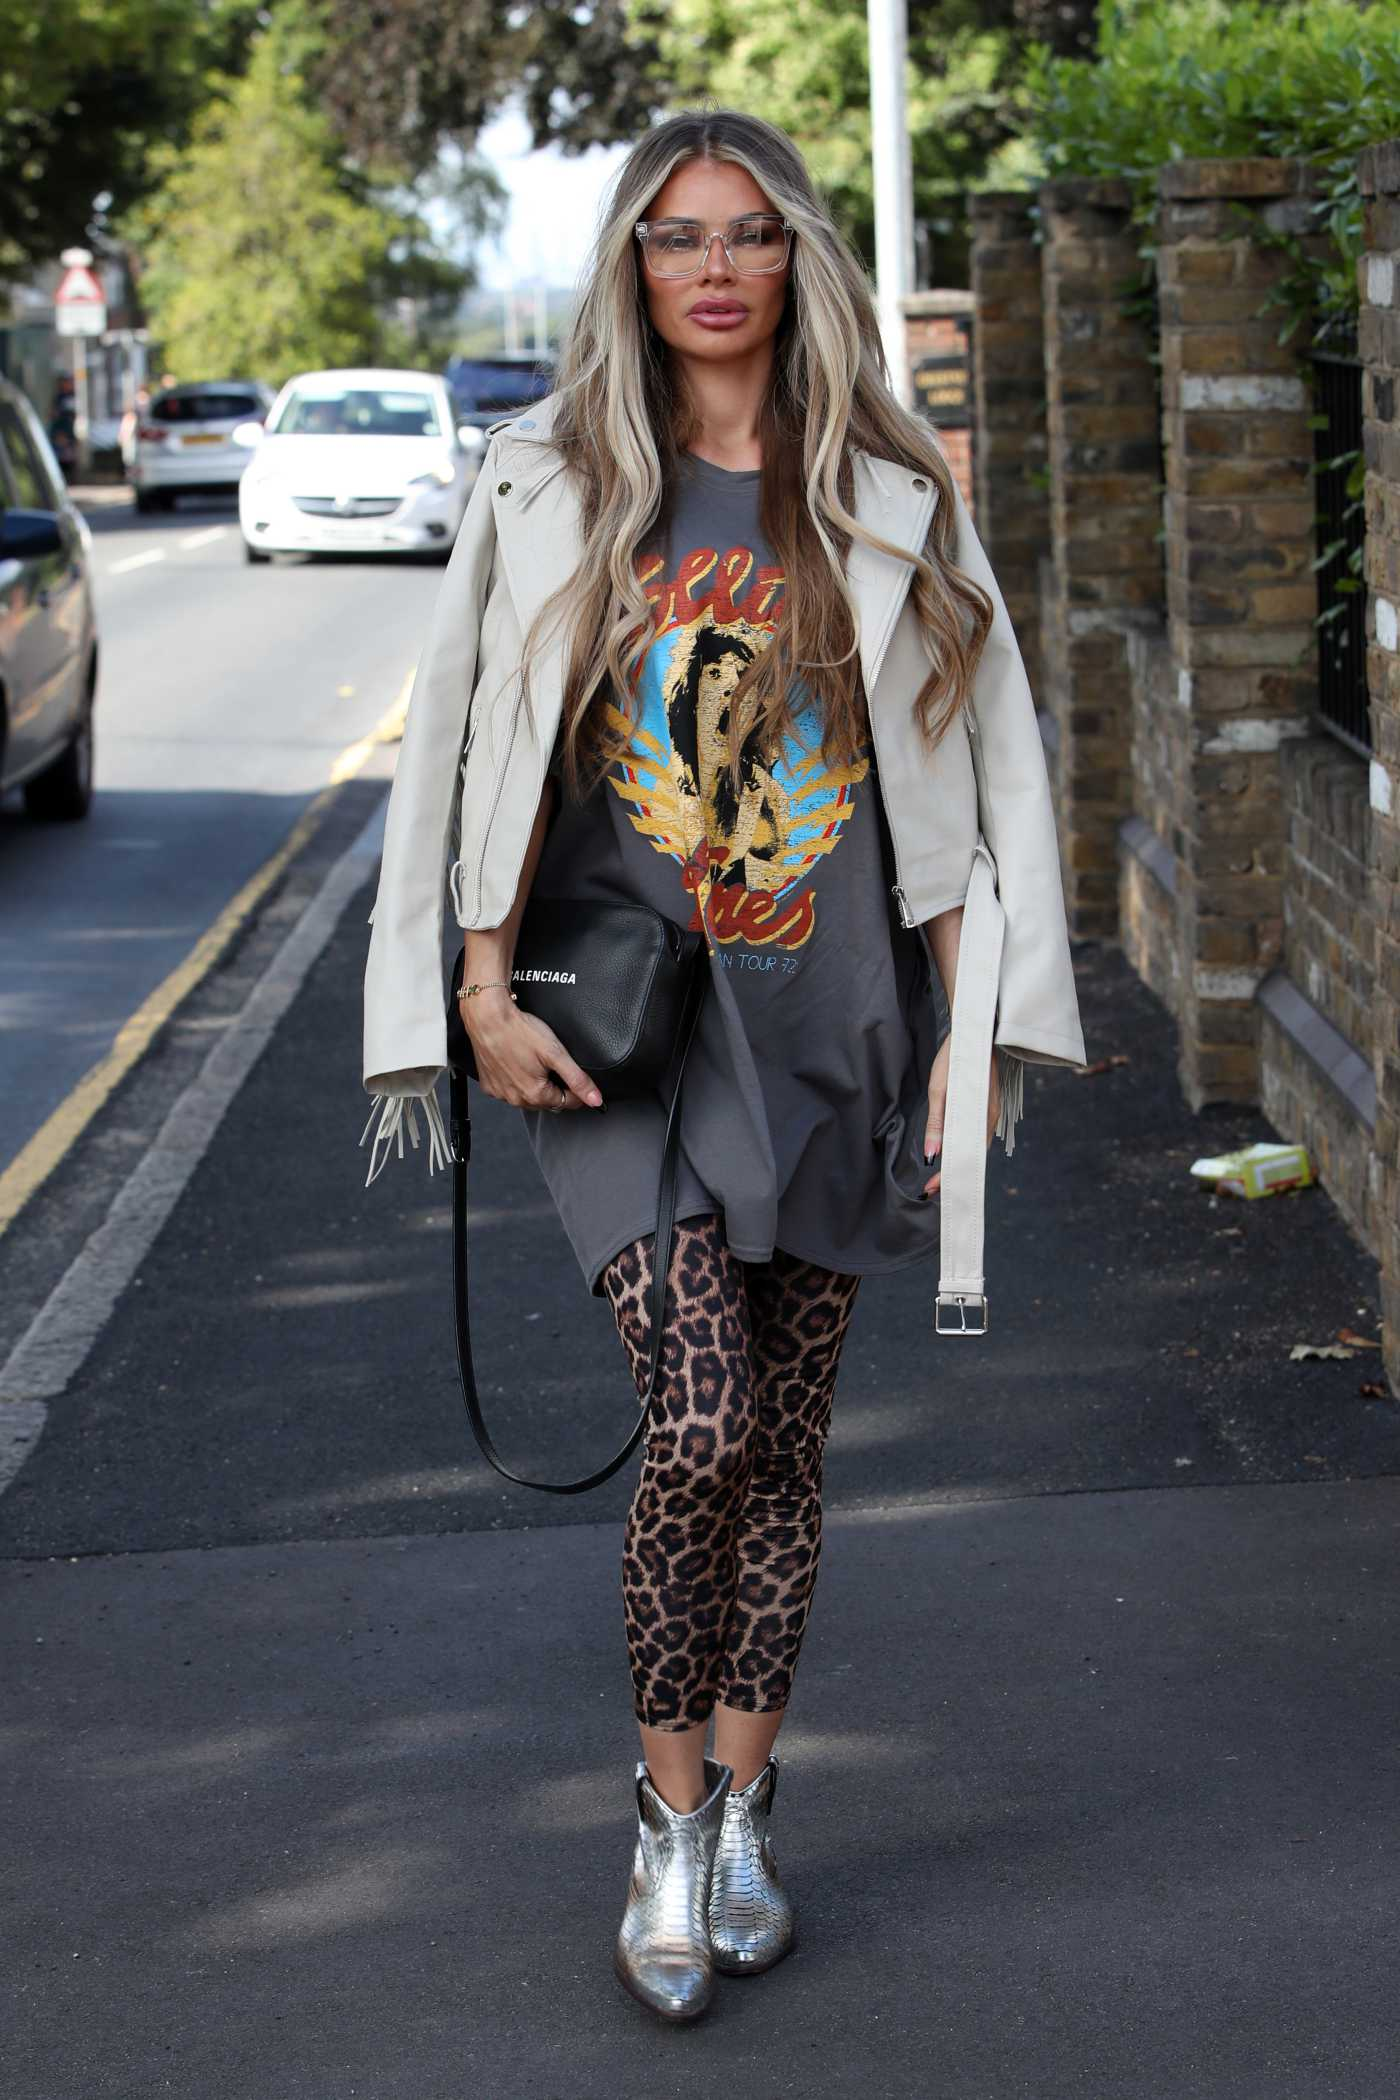 Chloe Sims in a White Leather Jacket Was Seen Out in Essex 08/02/2020